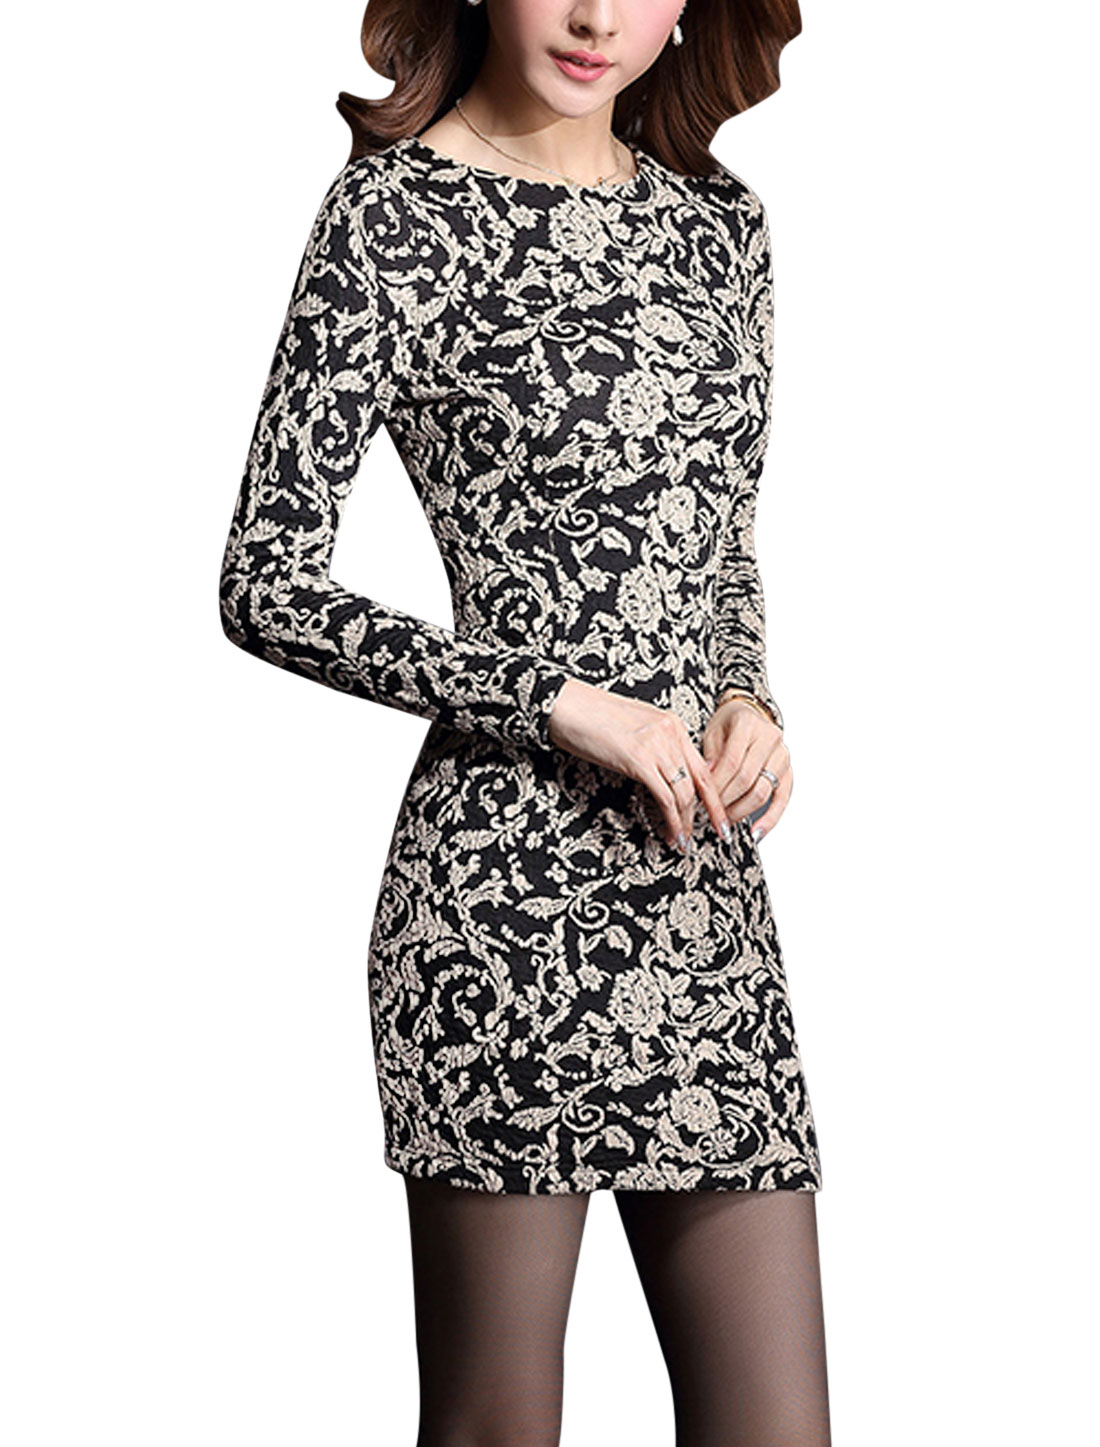 Lady Floral Pattern Hidden Zipper Back Long Sleeve Slim Stretch Dress Black L